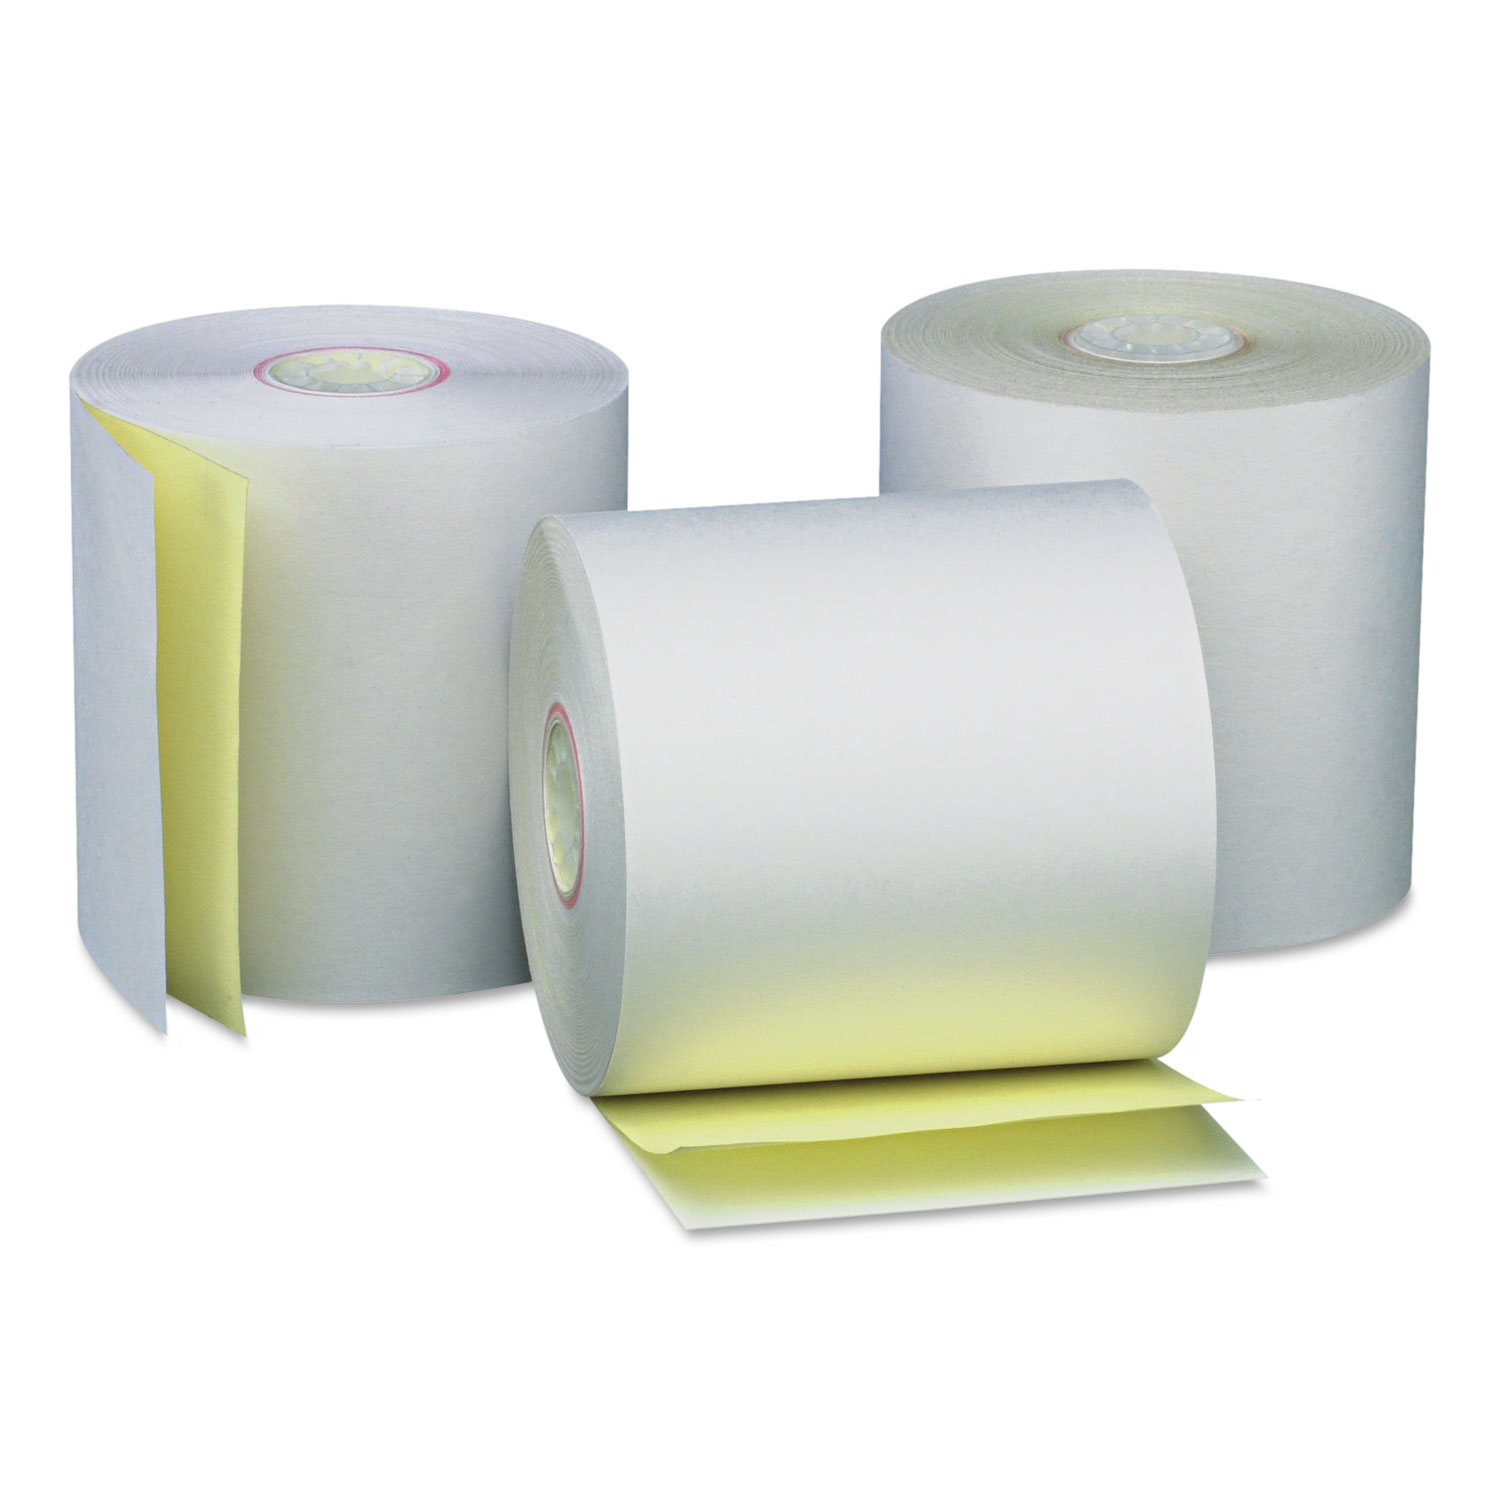 "Carbonless Paper Rolls, White/Canary, 3"" x 90 ft, 50/Carton"